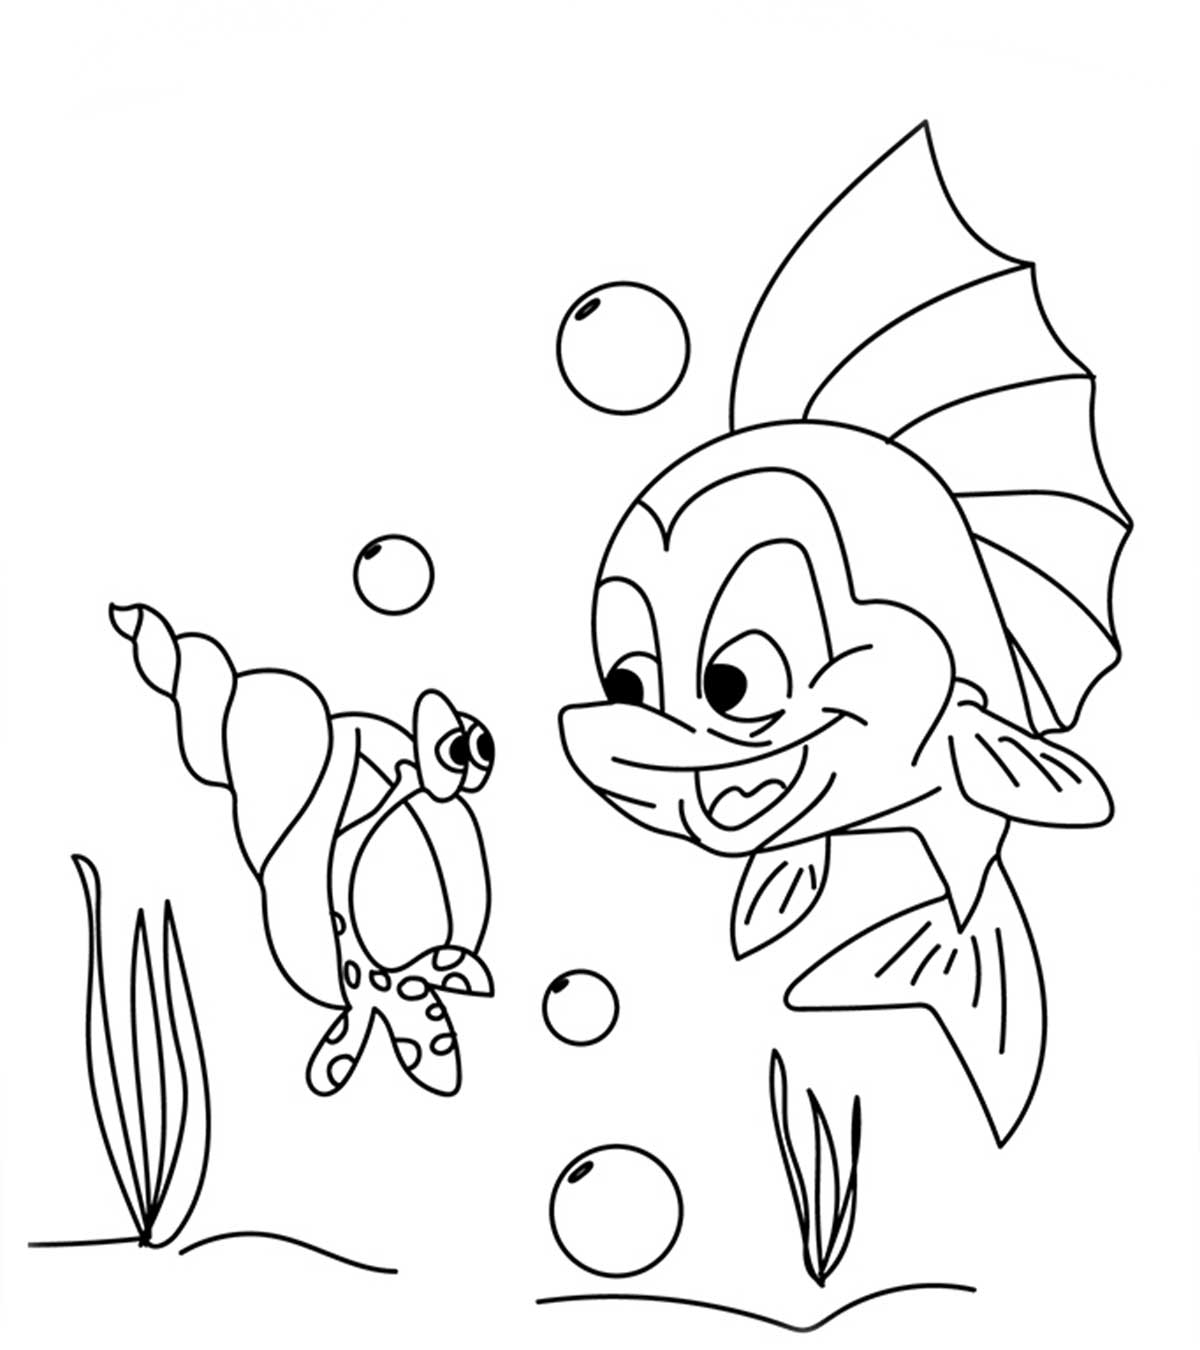 Free Salmon Coloring Page, Download Free Clip Art, Free Clip Art ... | 1350x1200